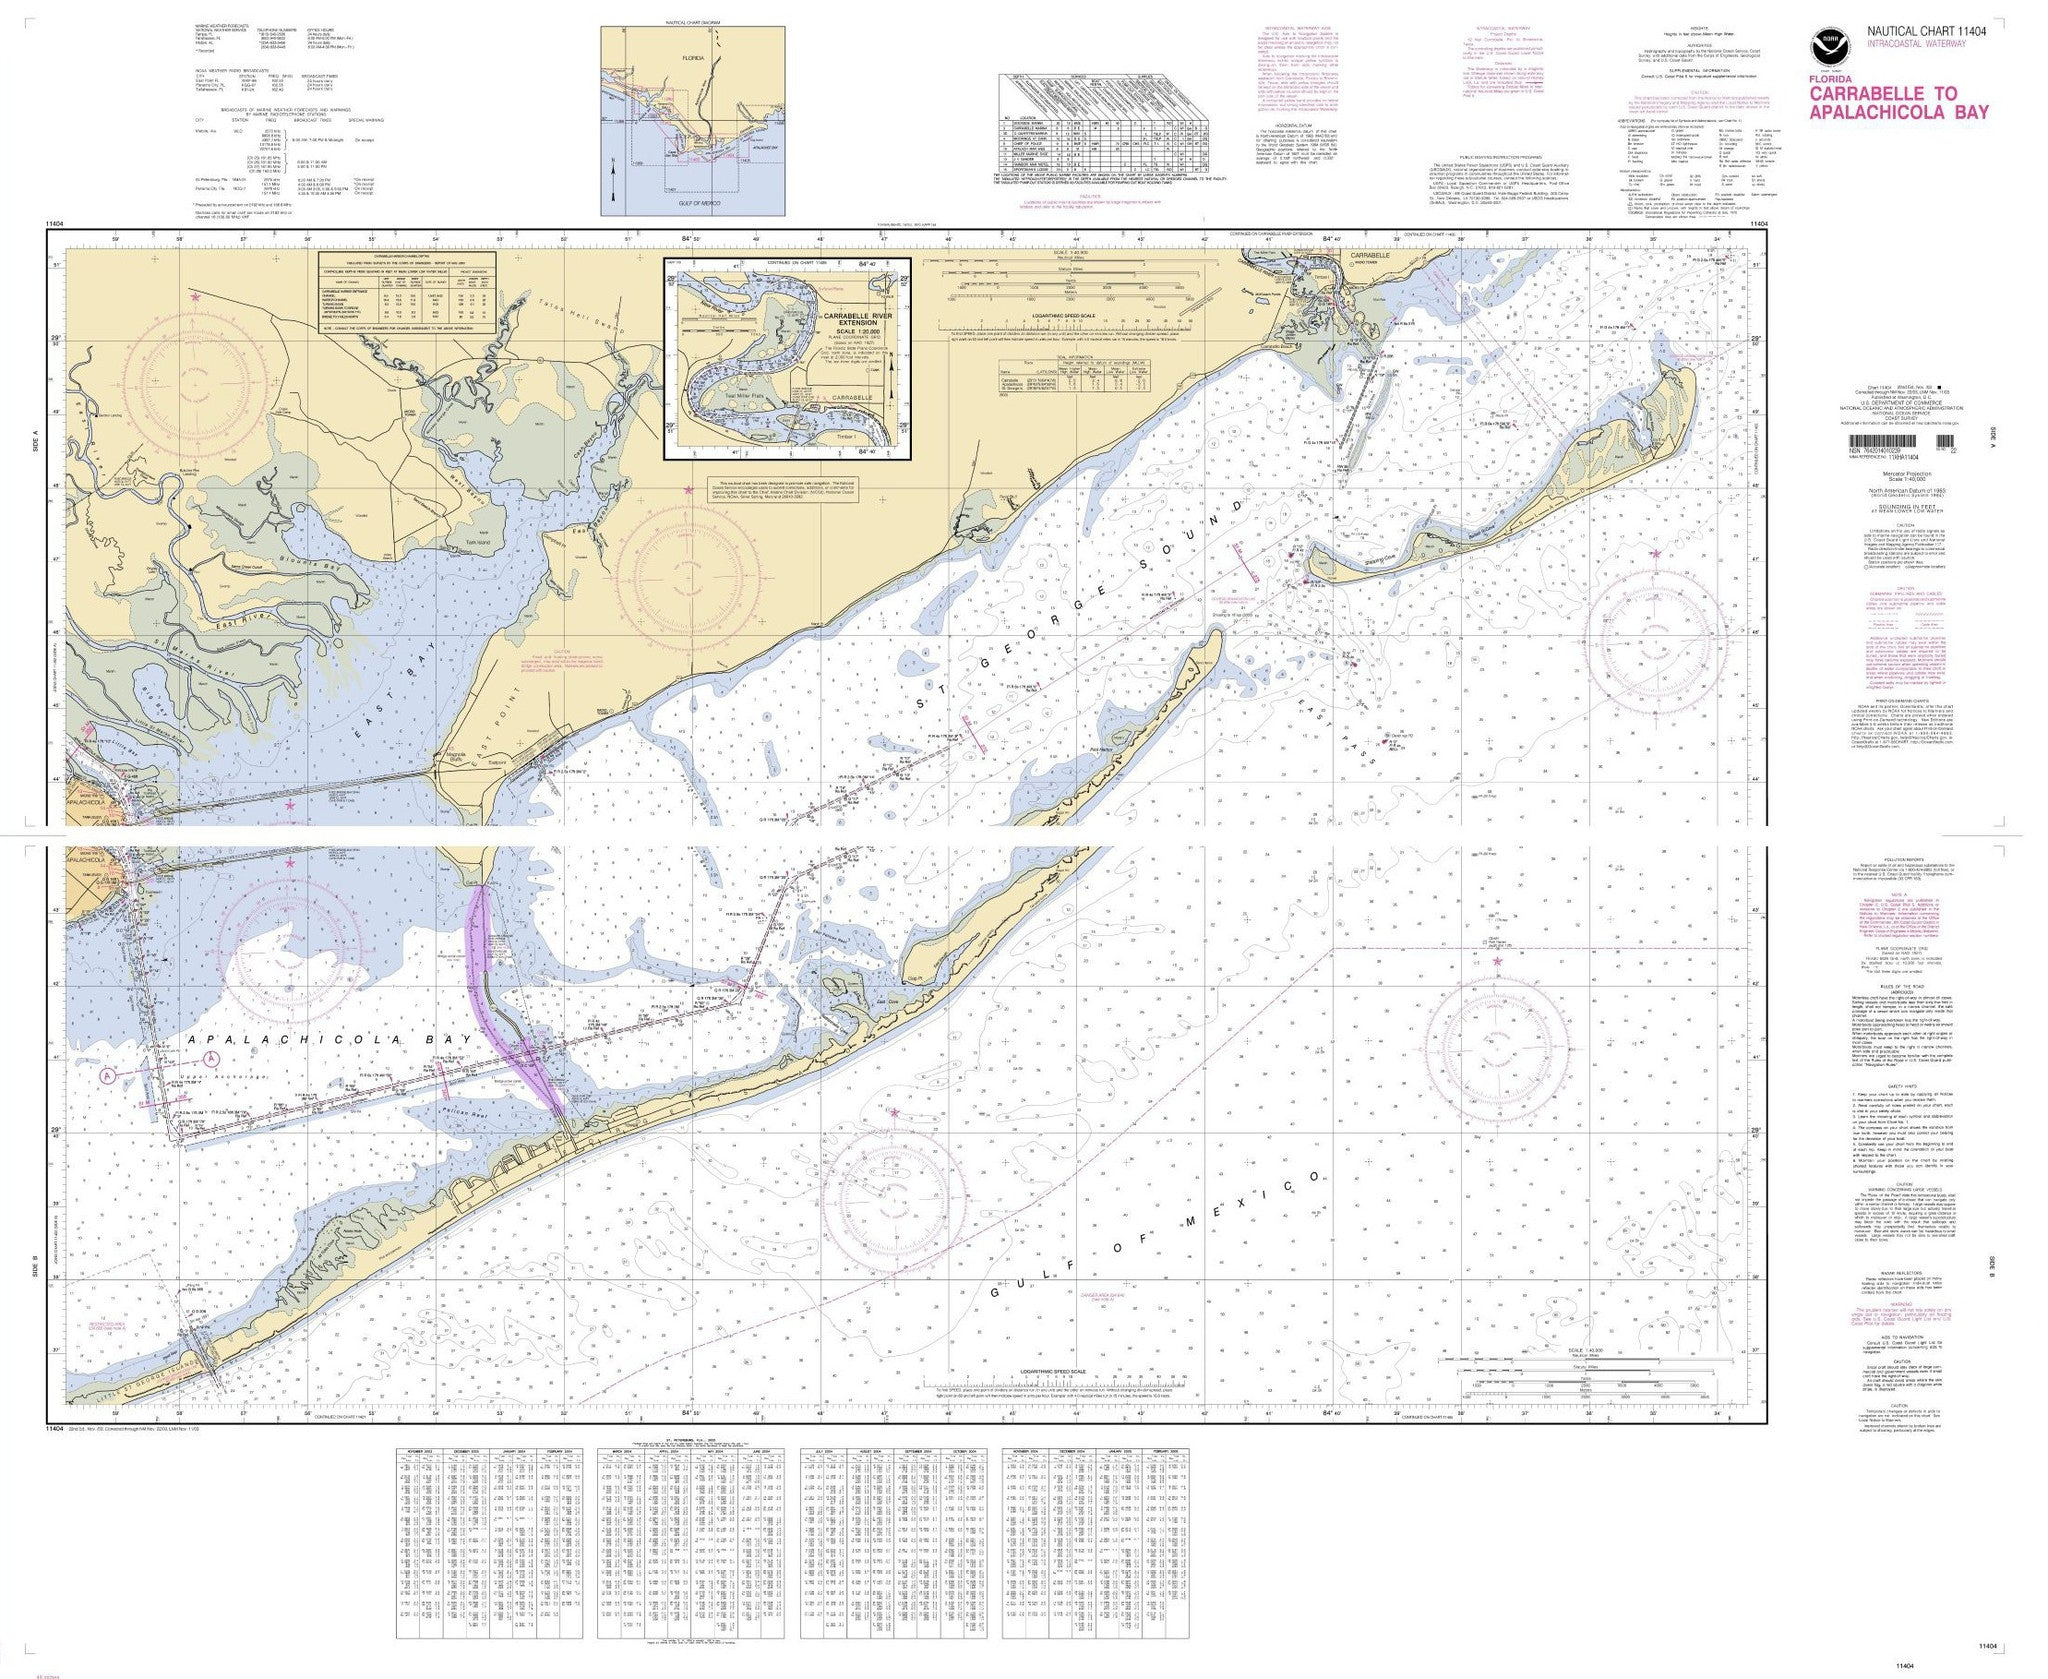 Print Of Intracoastal Waterway Carrabelle To Apalachicola Bay